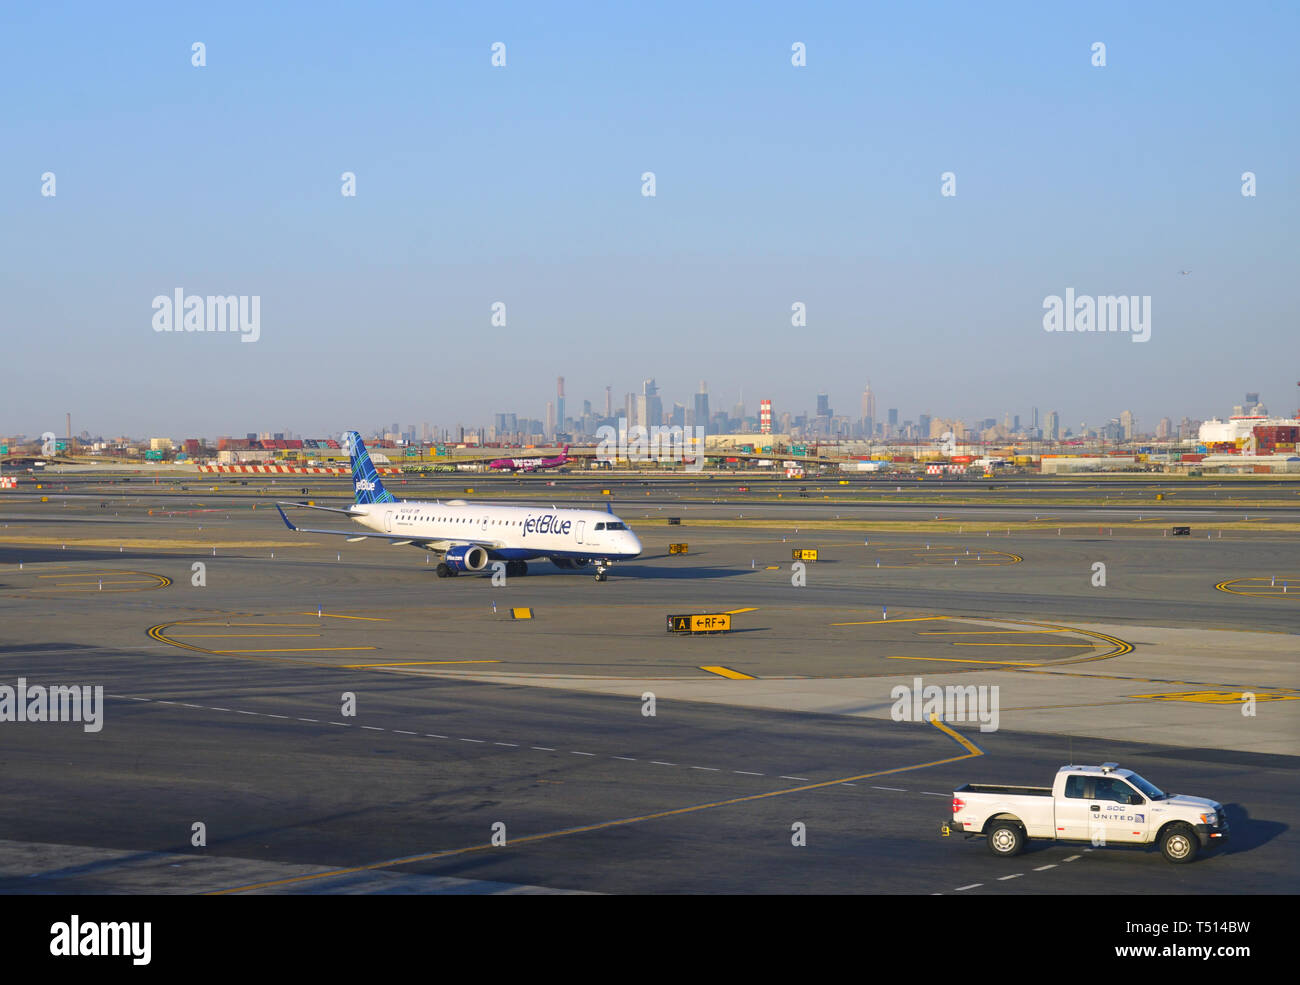 NEWARK, NJ -3 APR 2019- View of a plane from JetBlue (B6) at